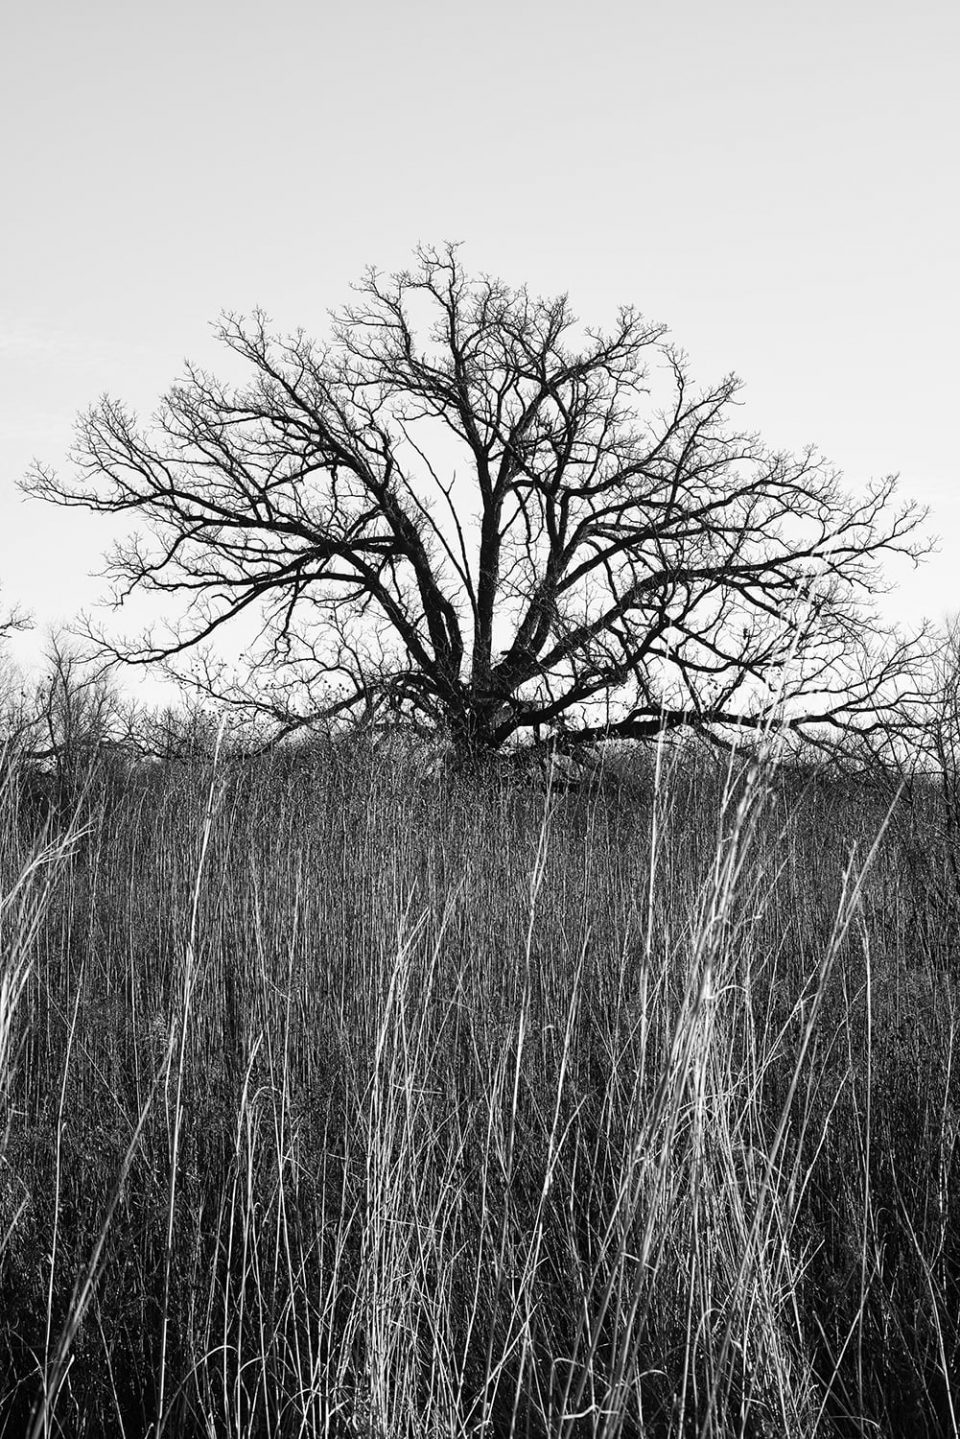 Black Tree in Tall Grass: Black and White Landscape Photograph by Keith Dotson. Click here to buy a fine art print.